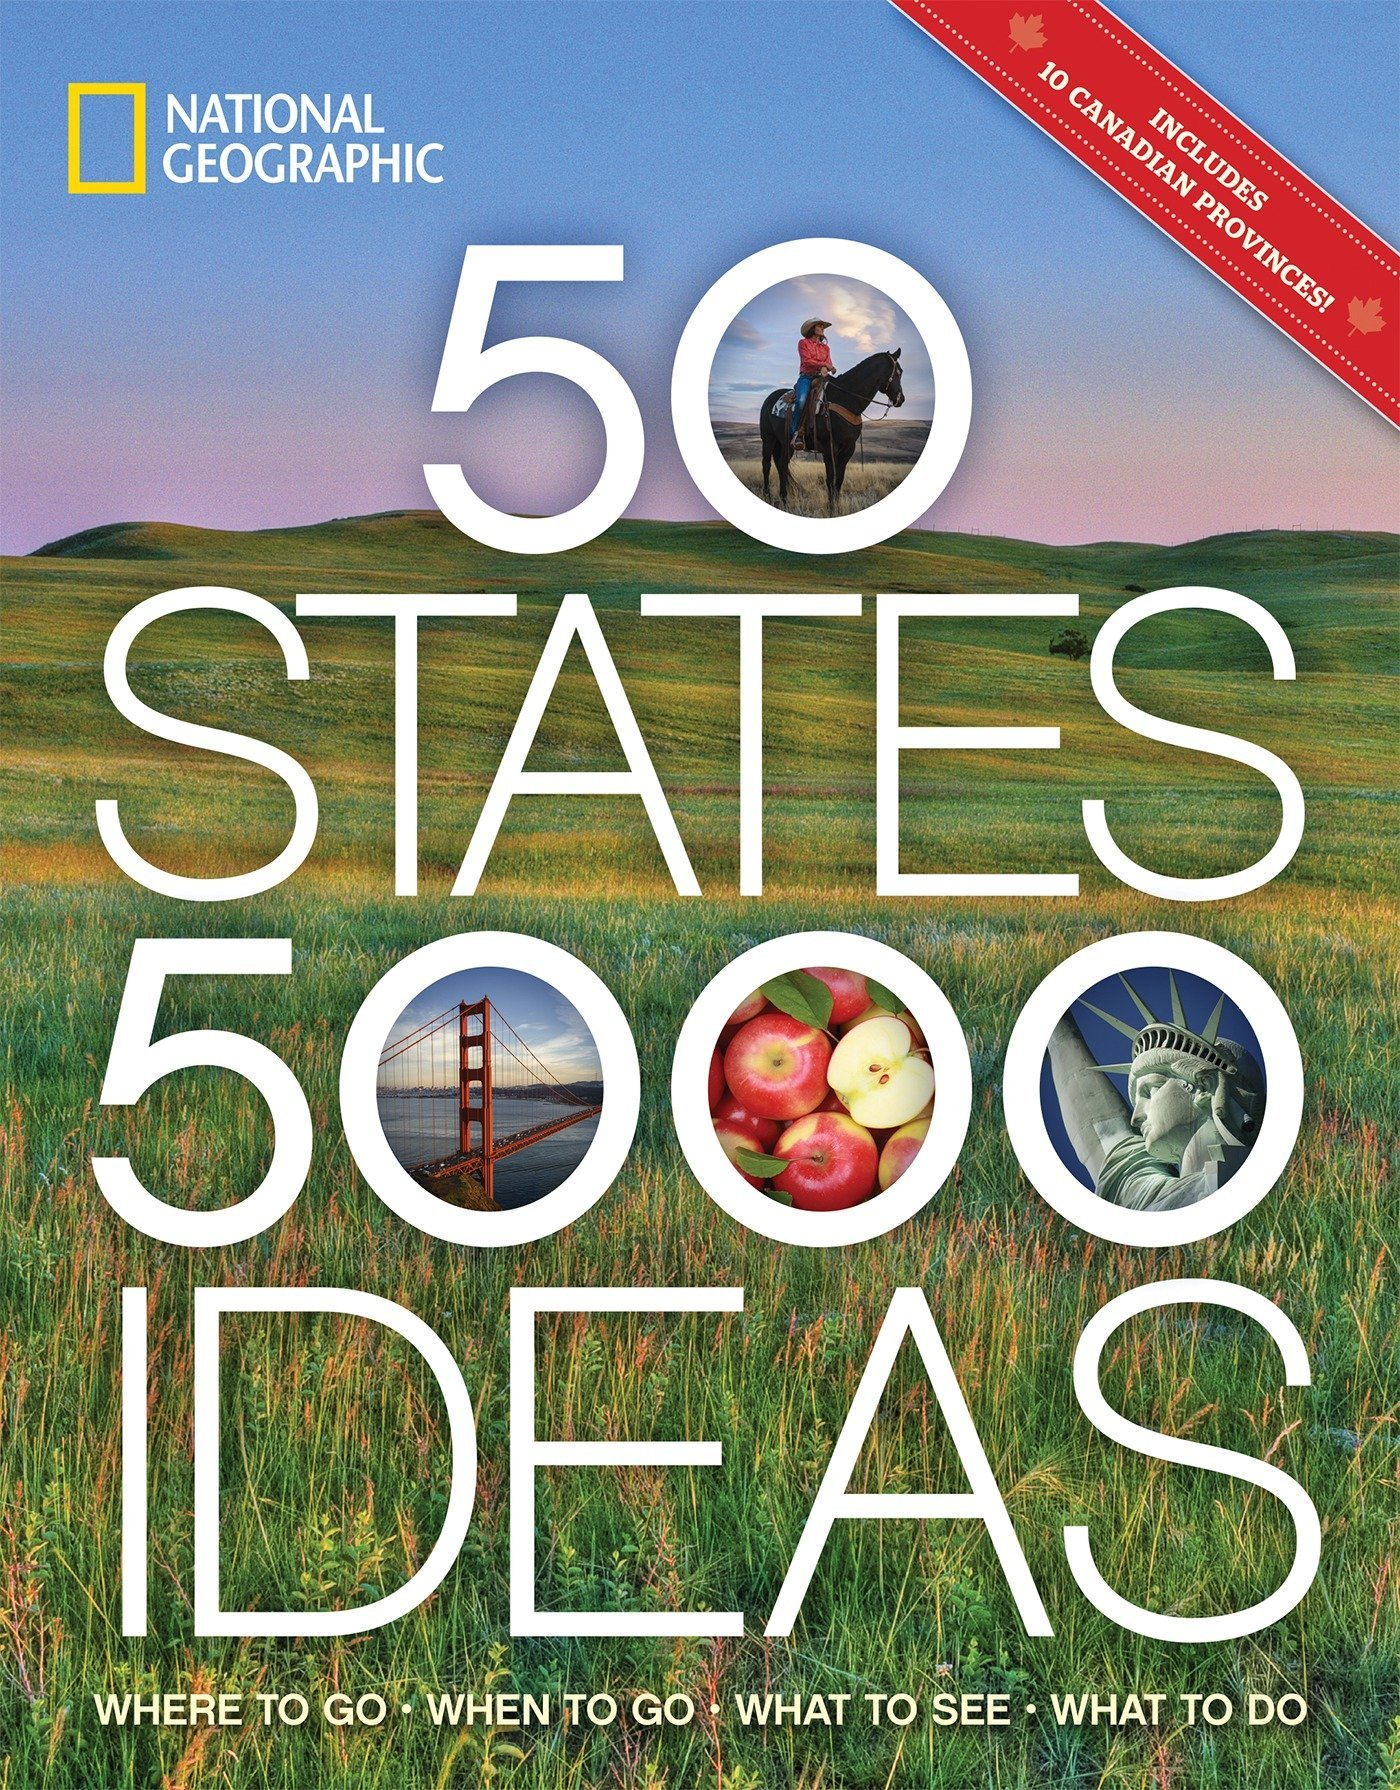 50 States 000 Ideas Where product image